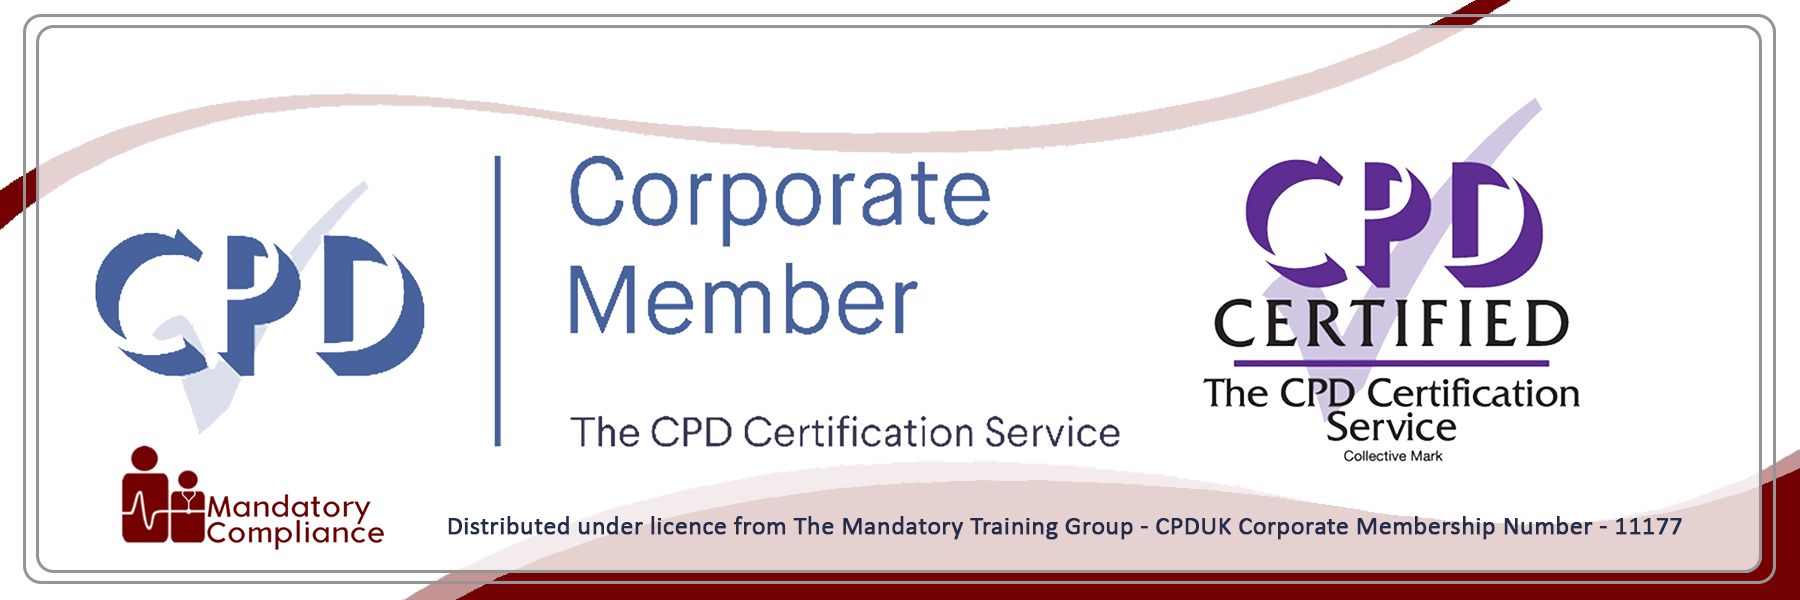 Supply Chain Management Training - Online Training Course - CPD Accredited - Mandatory Compliance UK -